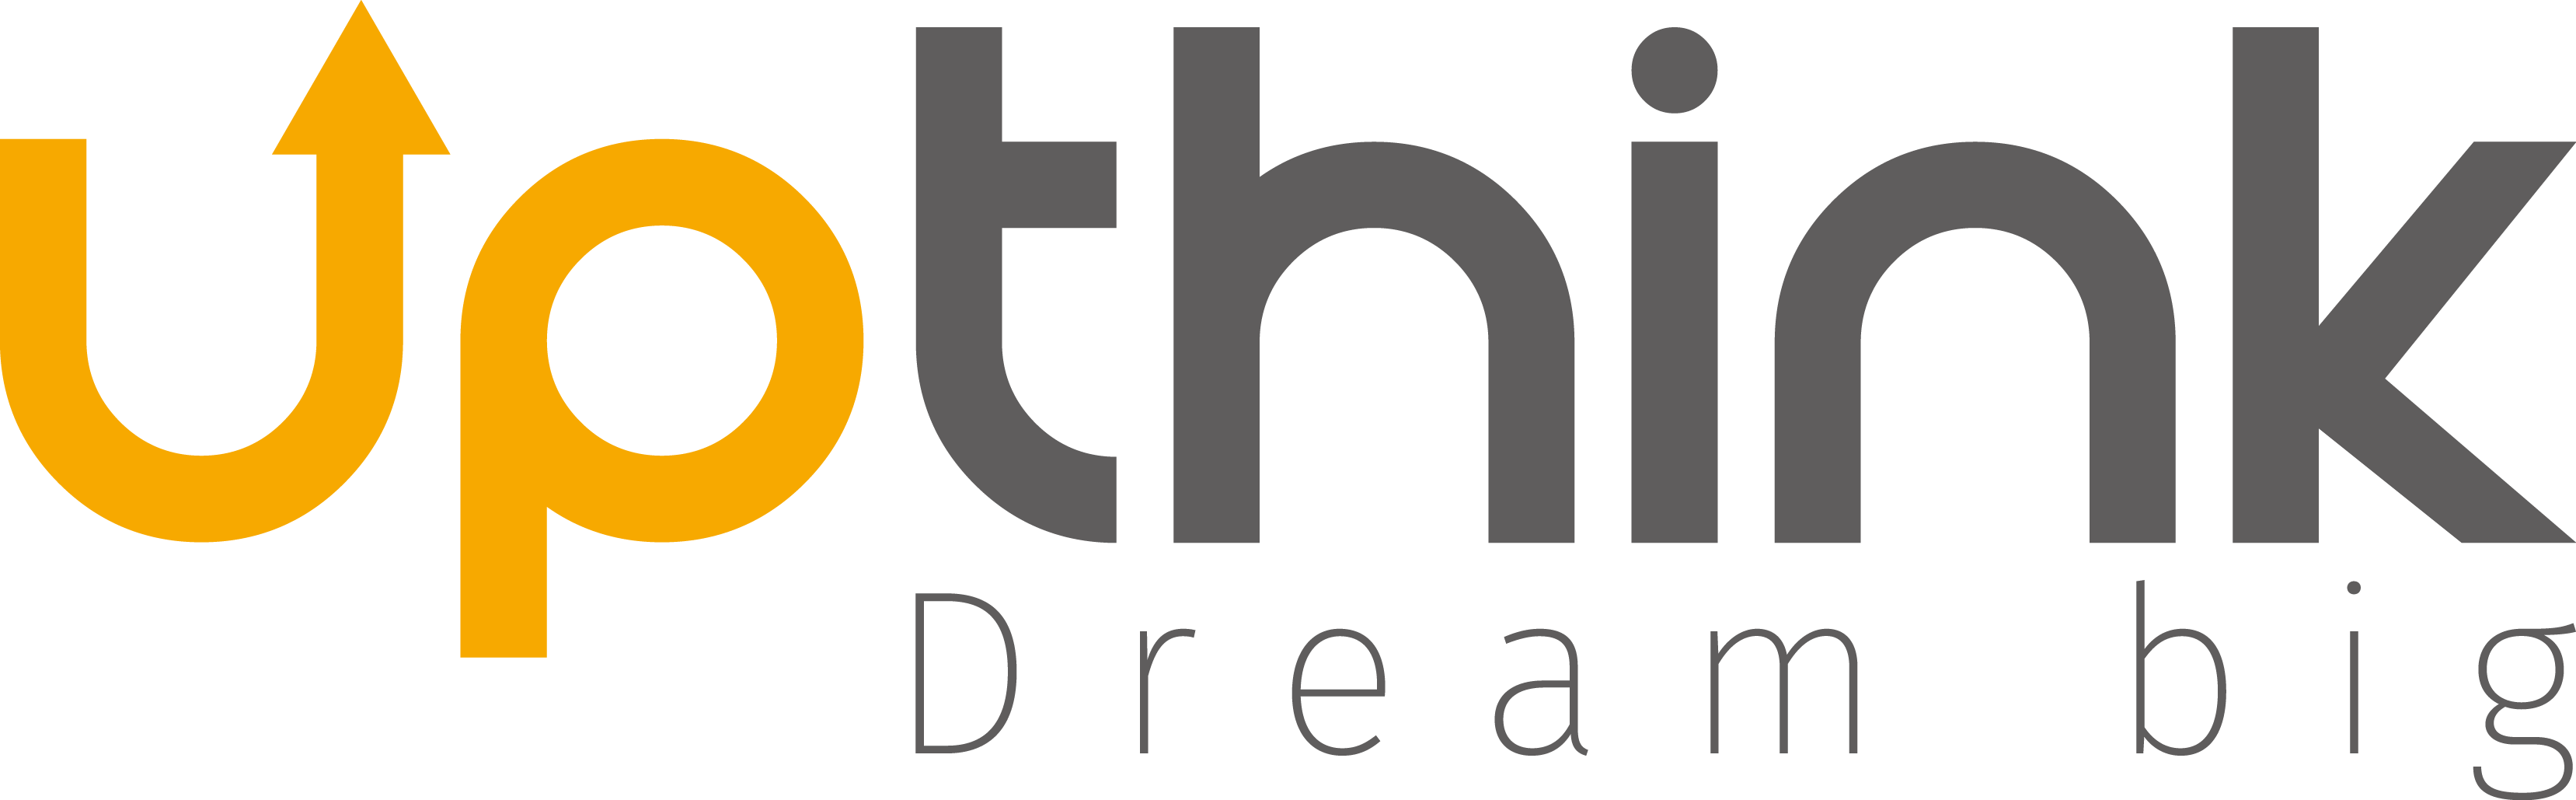 Upthink.gr - Digital Agency